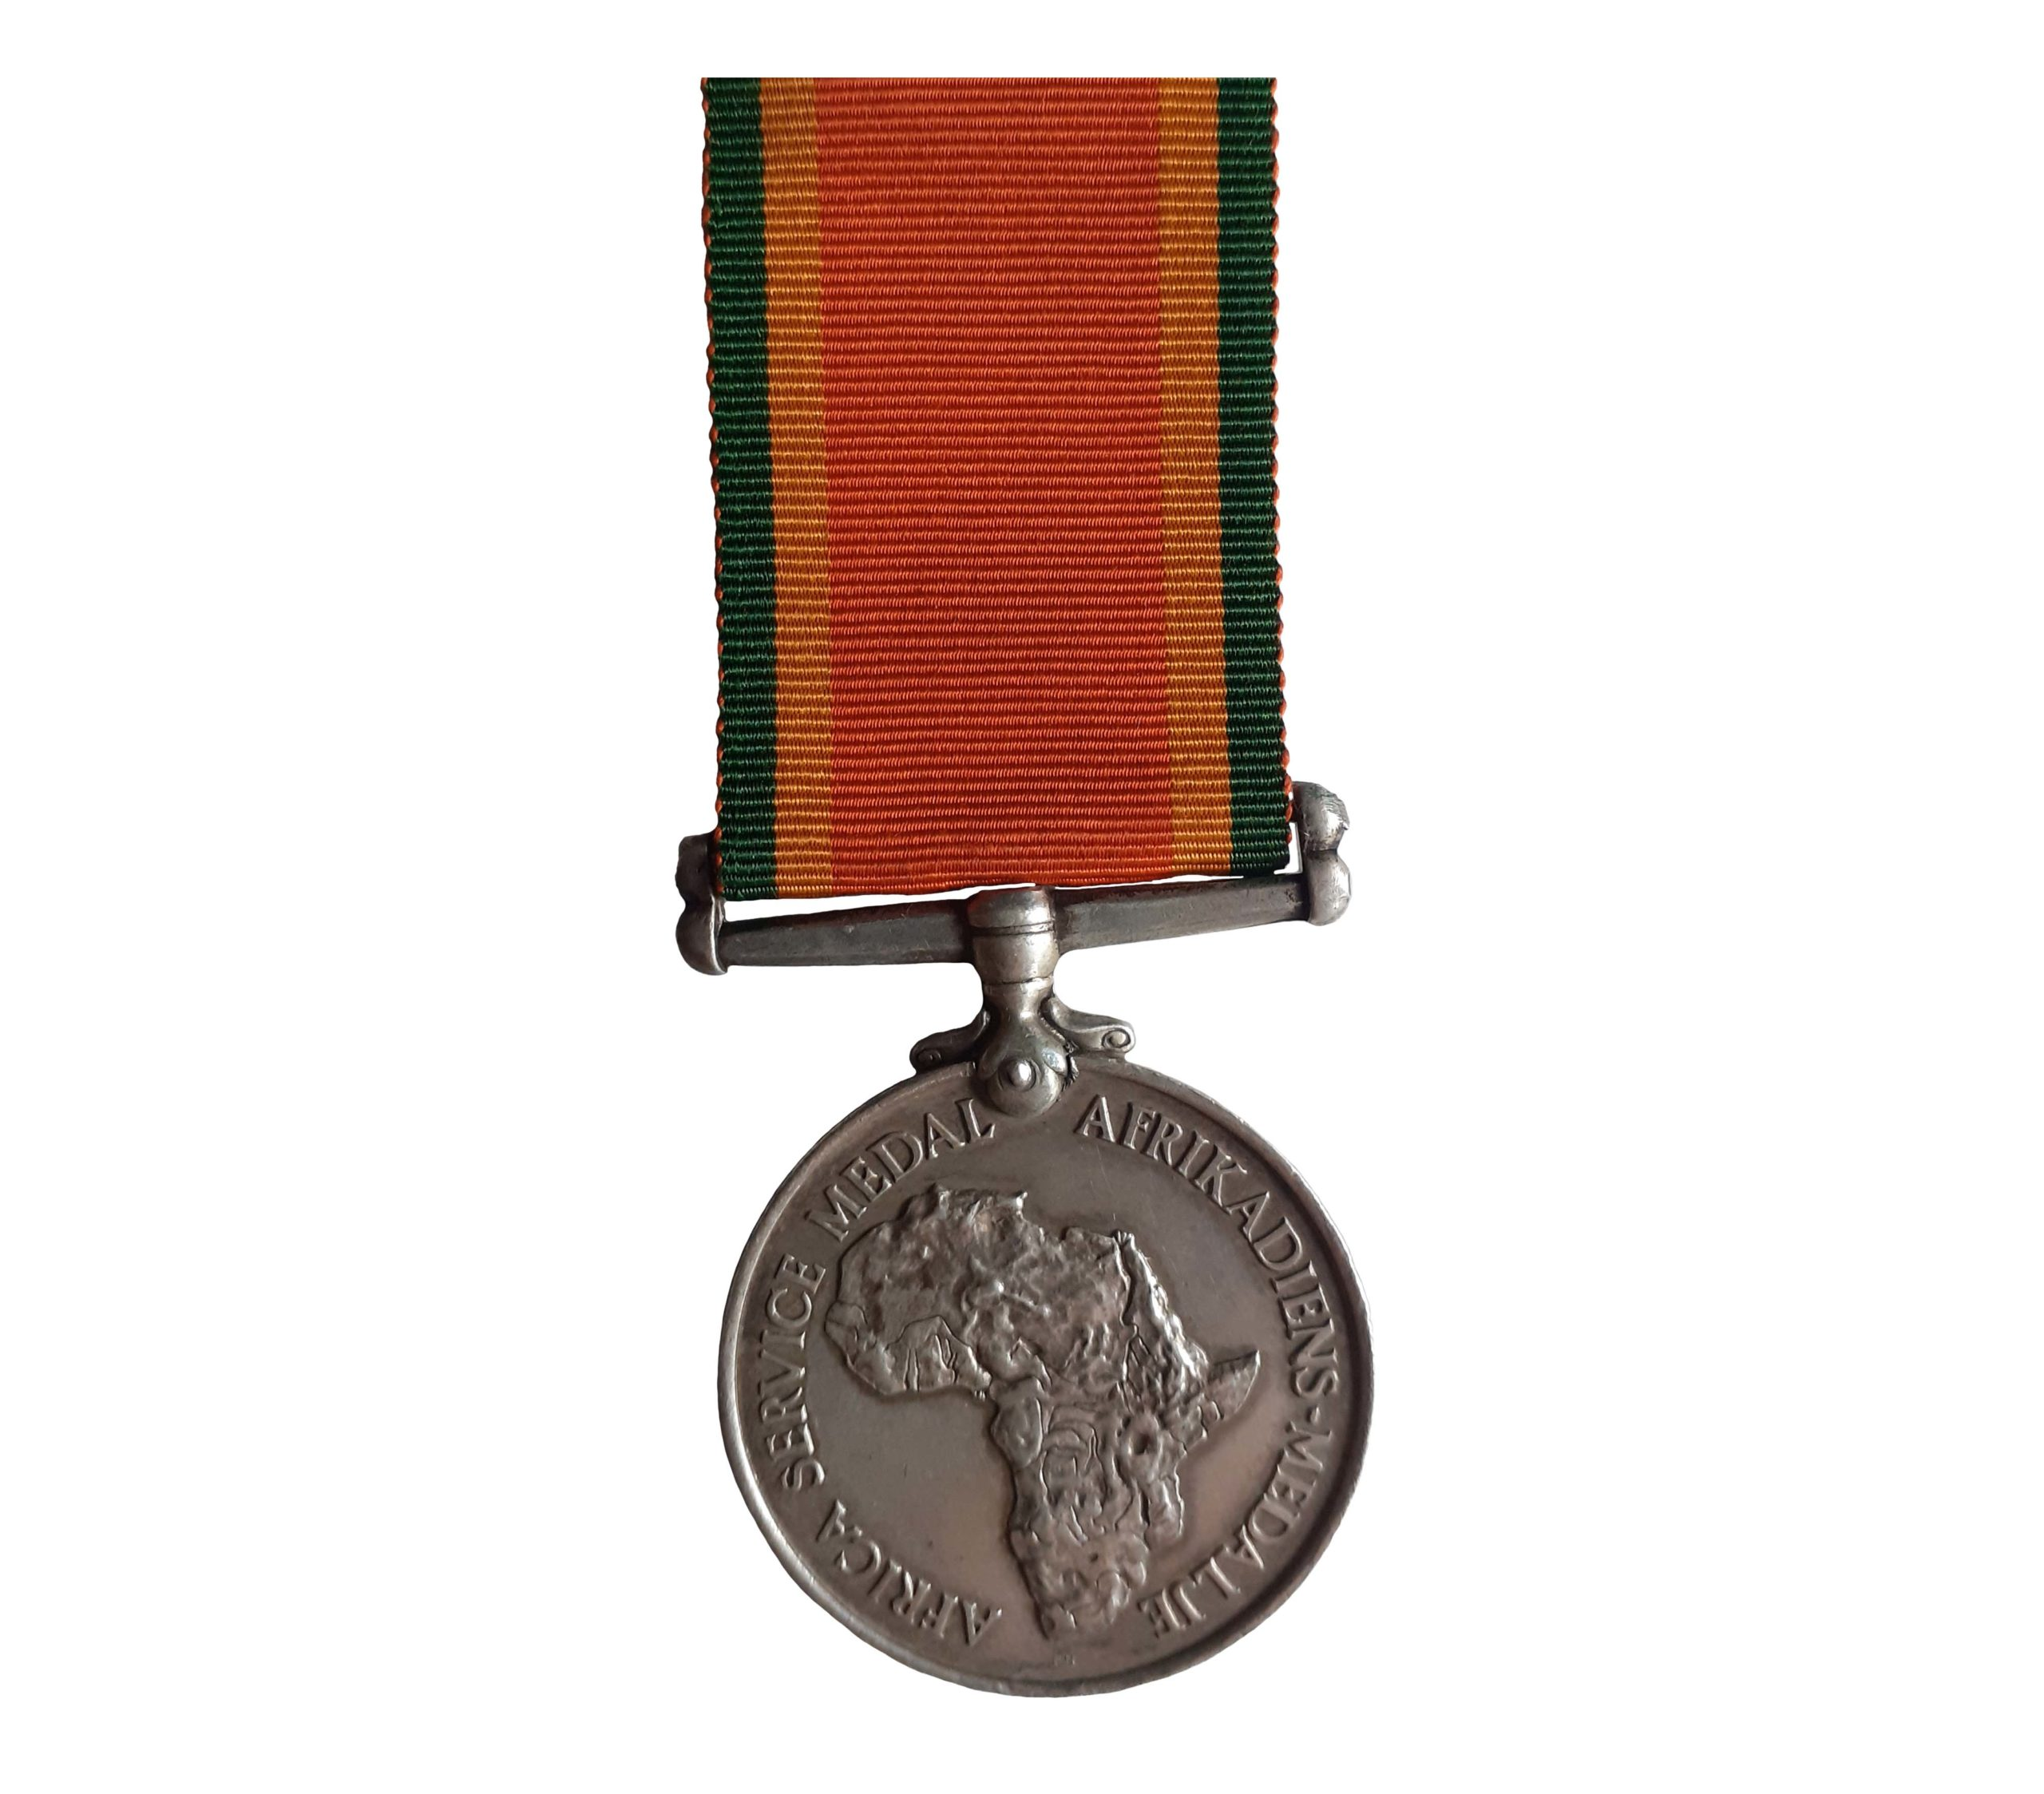 A WW2 South African Service Medal to P. R. Martin